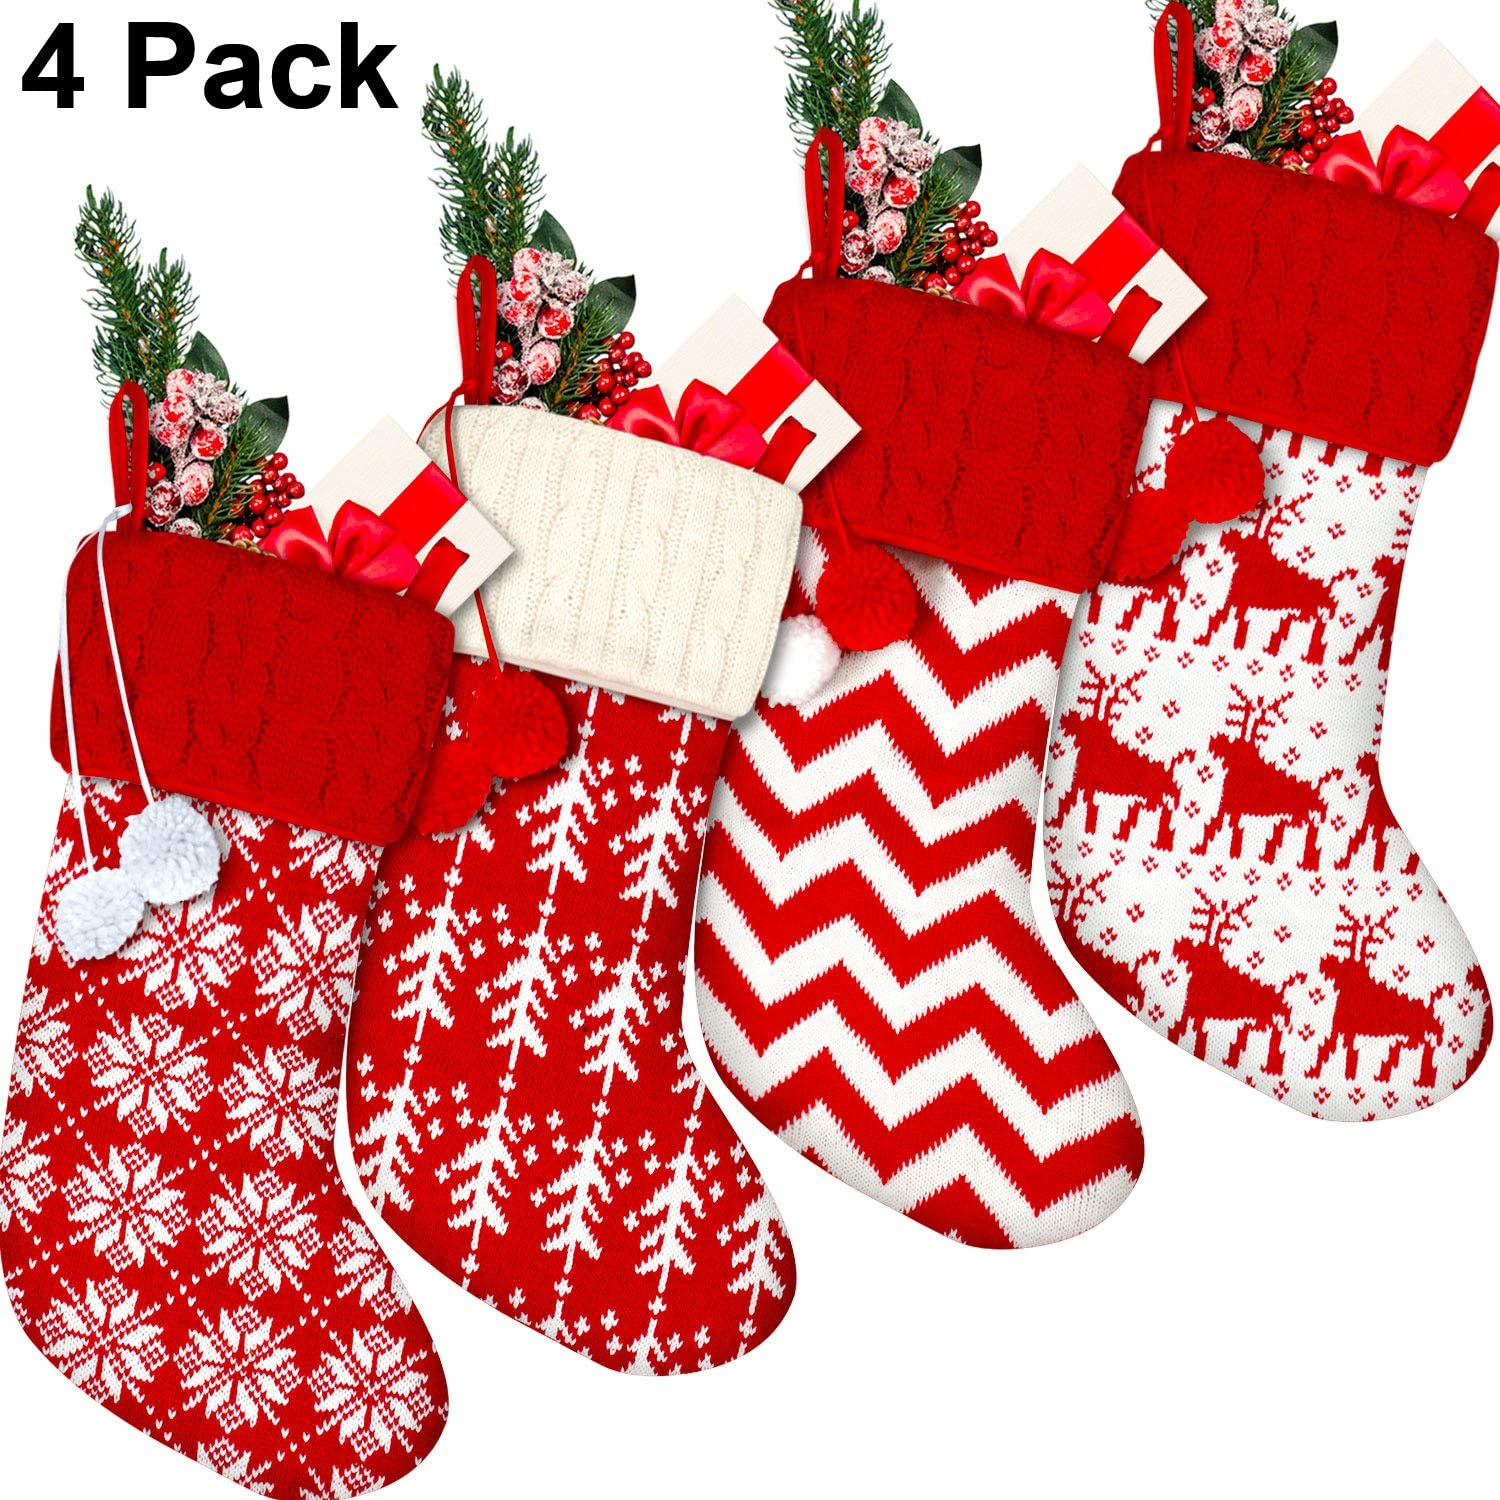 4 Pieces Knit Christmas Stockings Red and White Christmas Hanging Stockings Snowflake Tree Reindeer Stripe Stockings with Plush Balls for Xmas Holidays Decorations